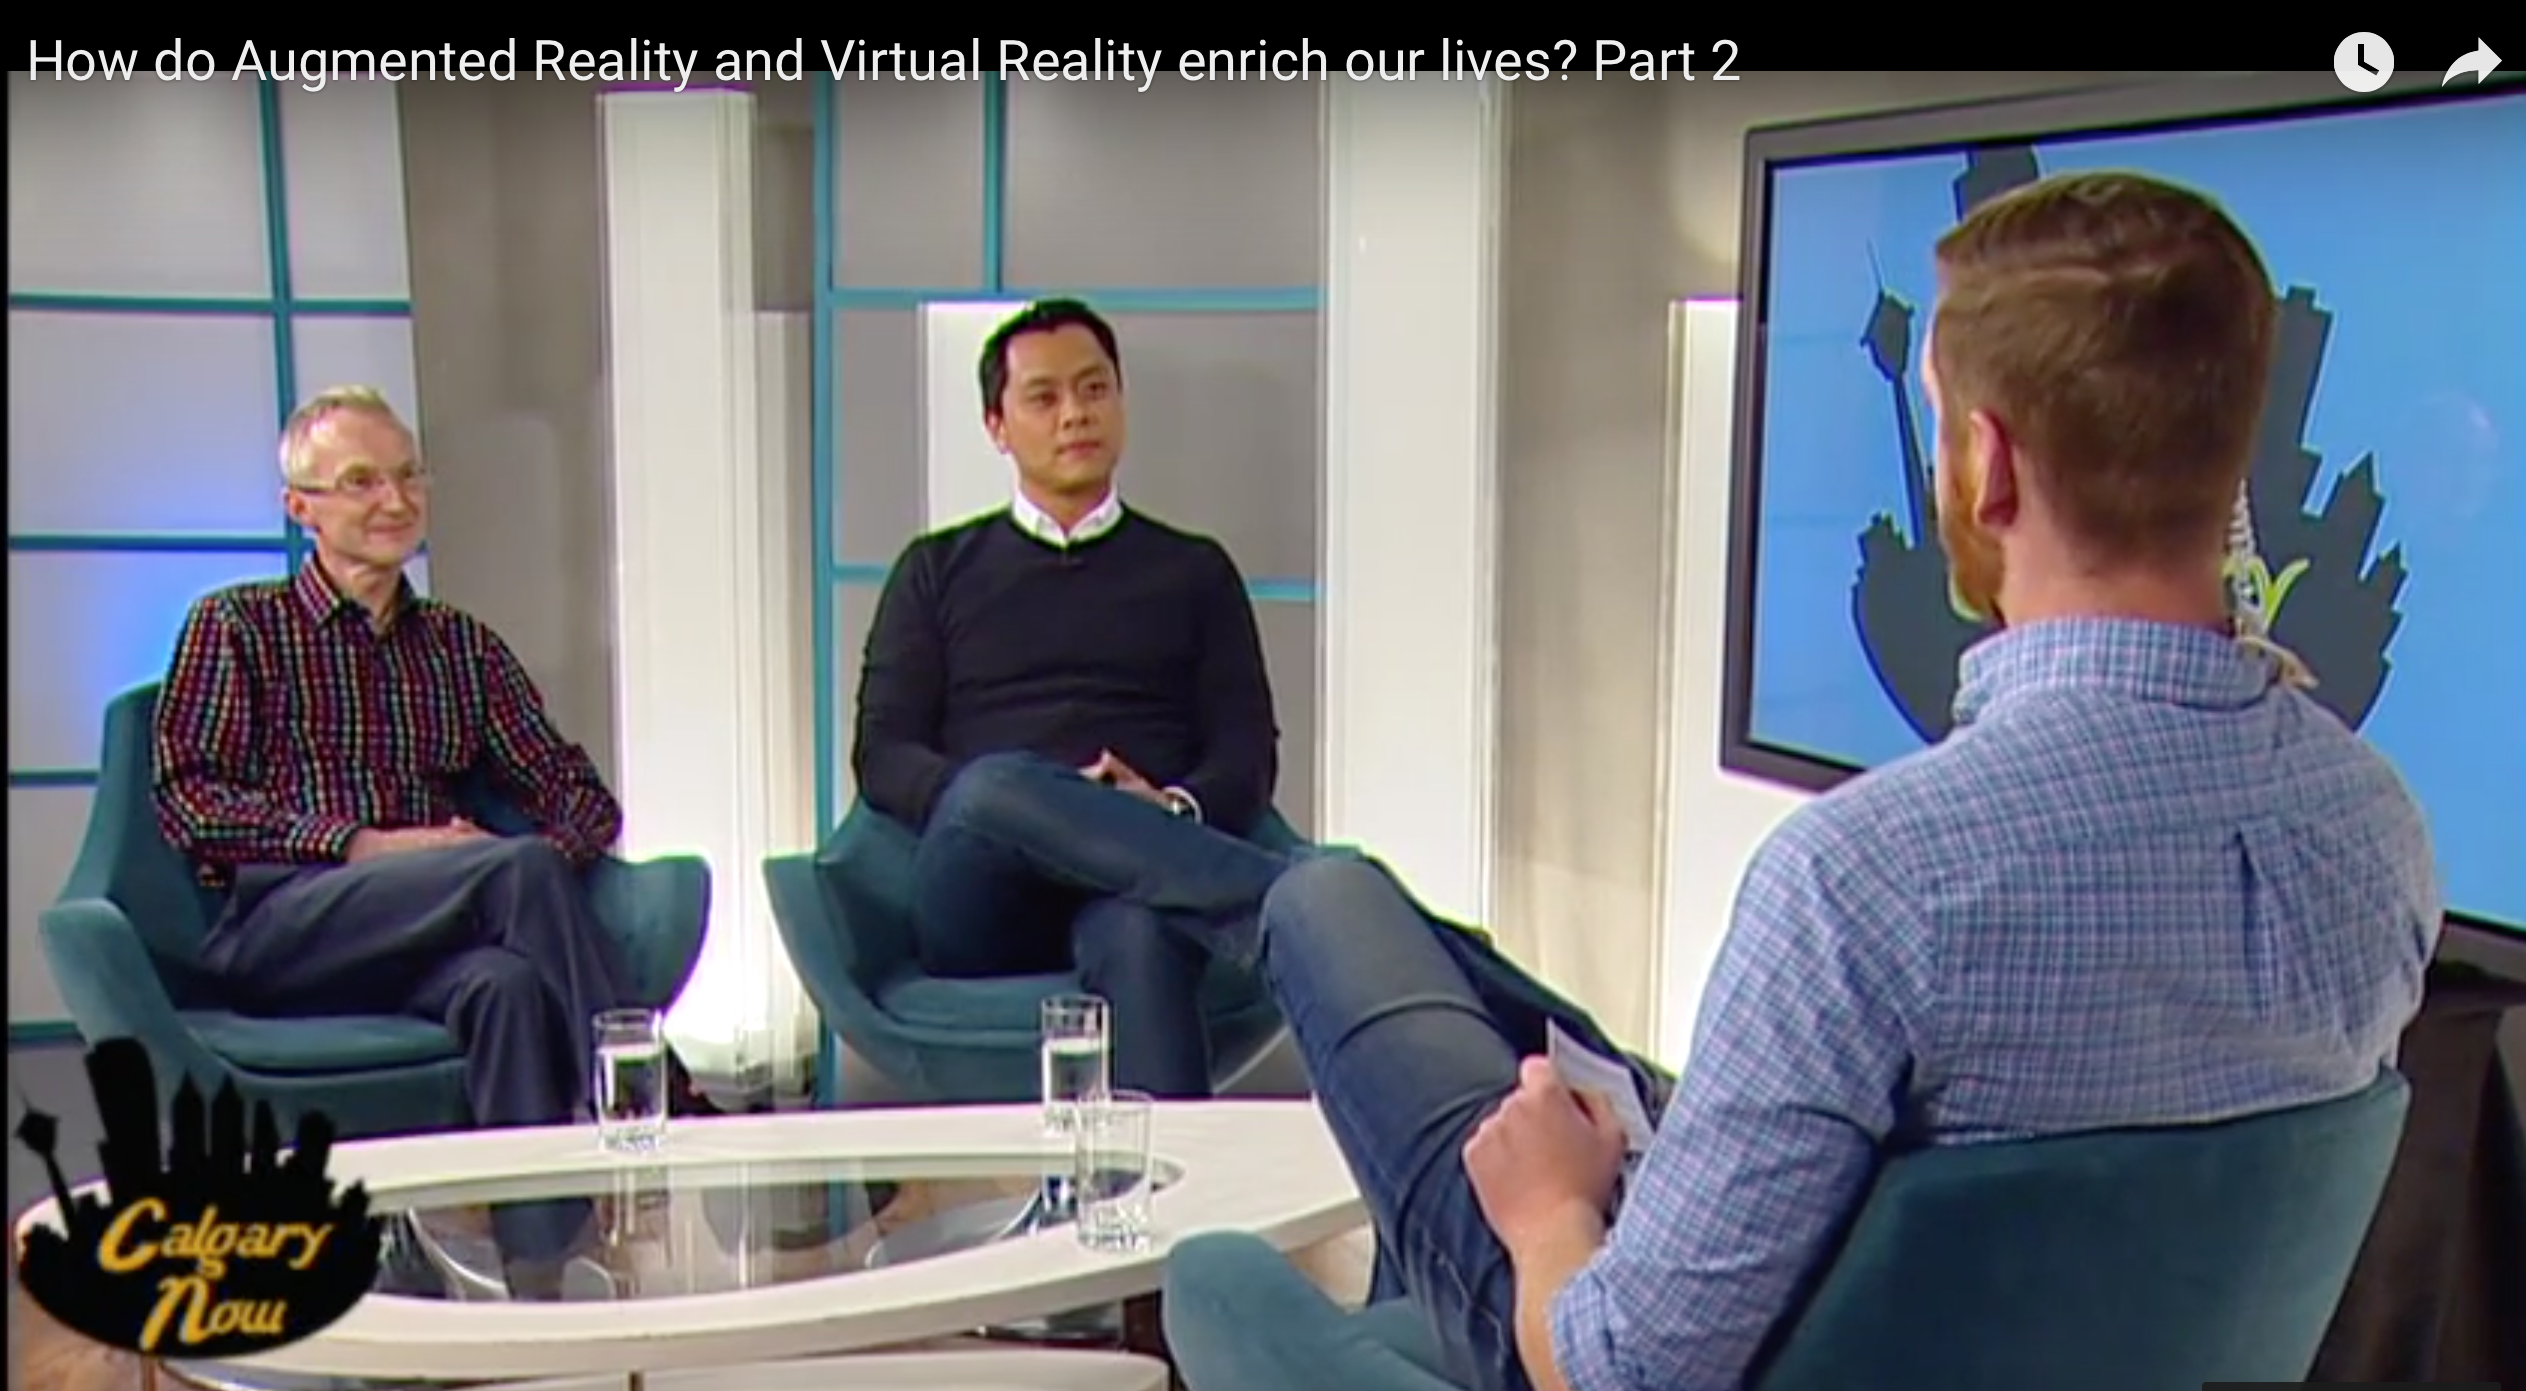 Talking about Augmented Reality